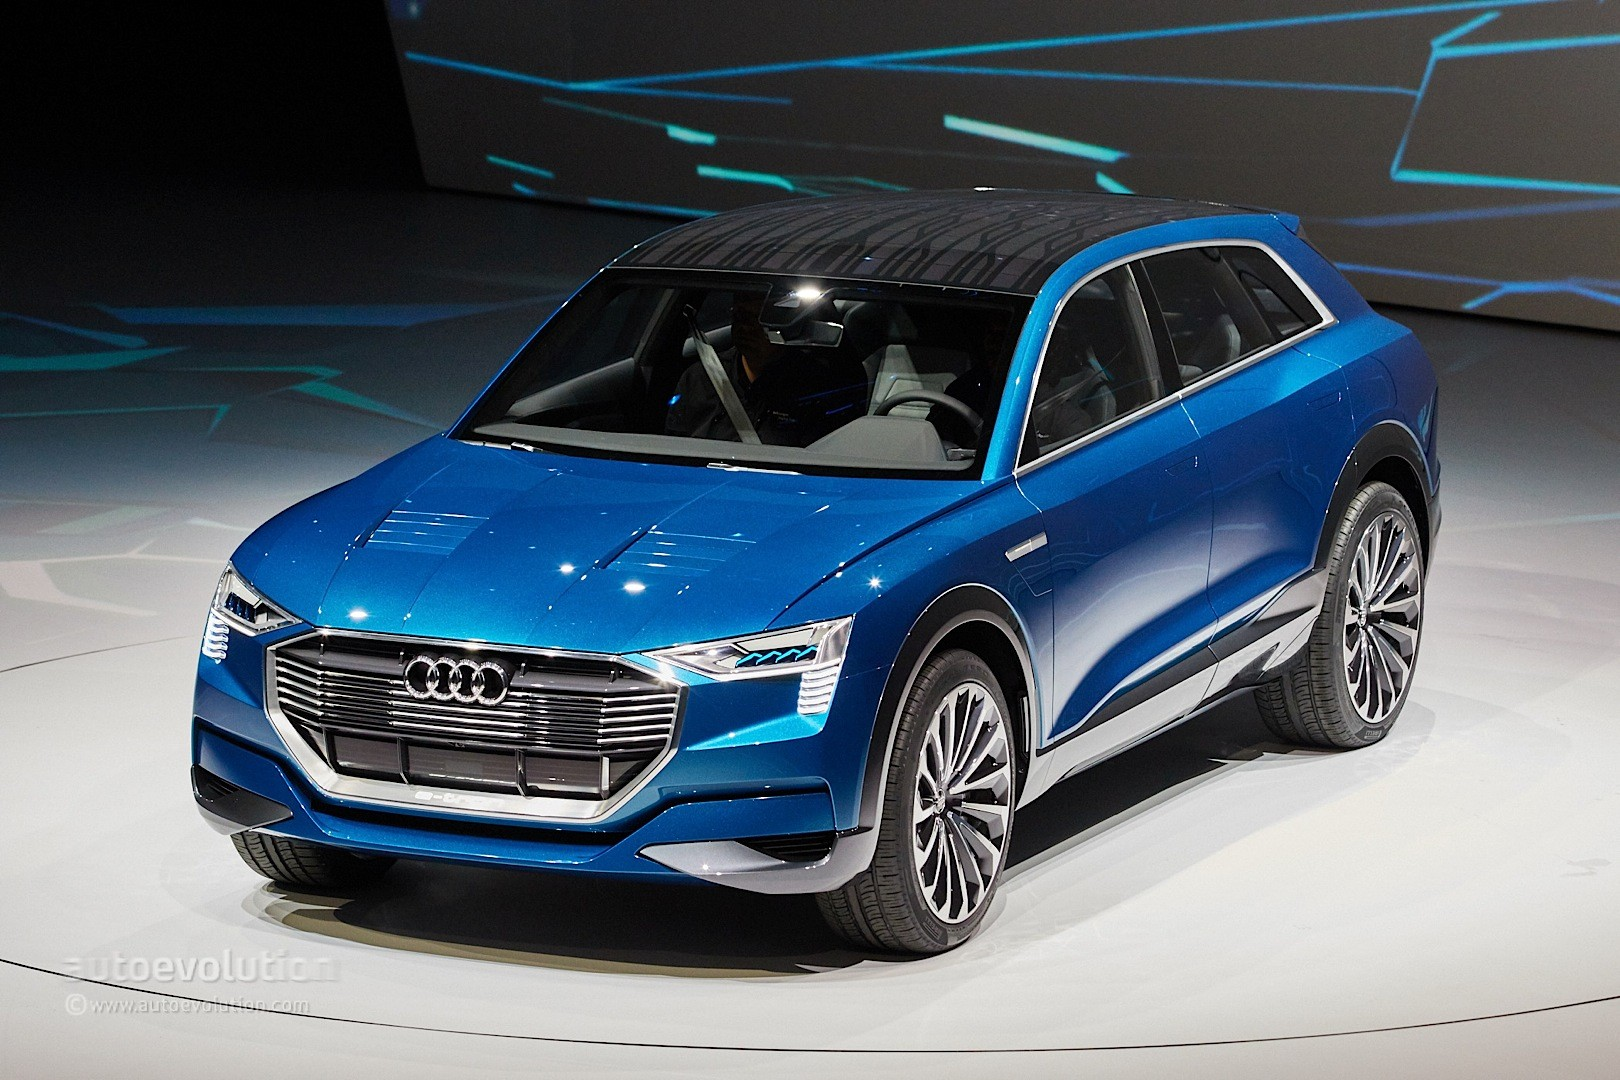 audis-production-network-is-ready-for-electric-mobility_2[1].jpg